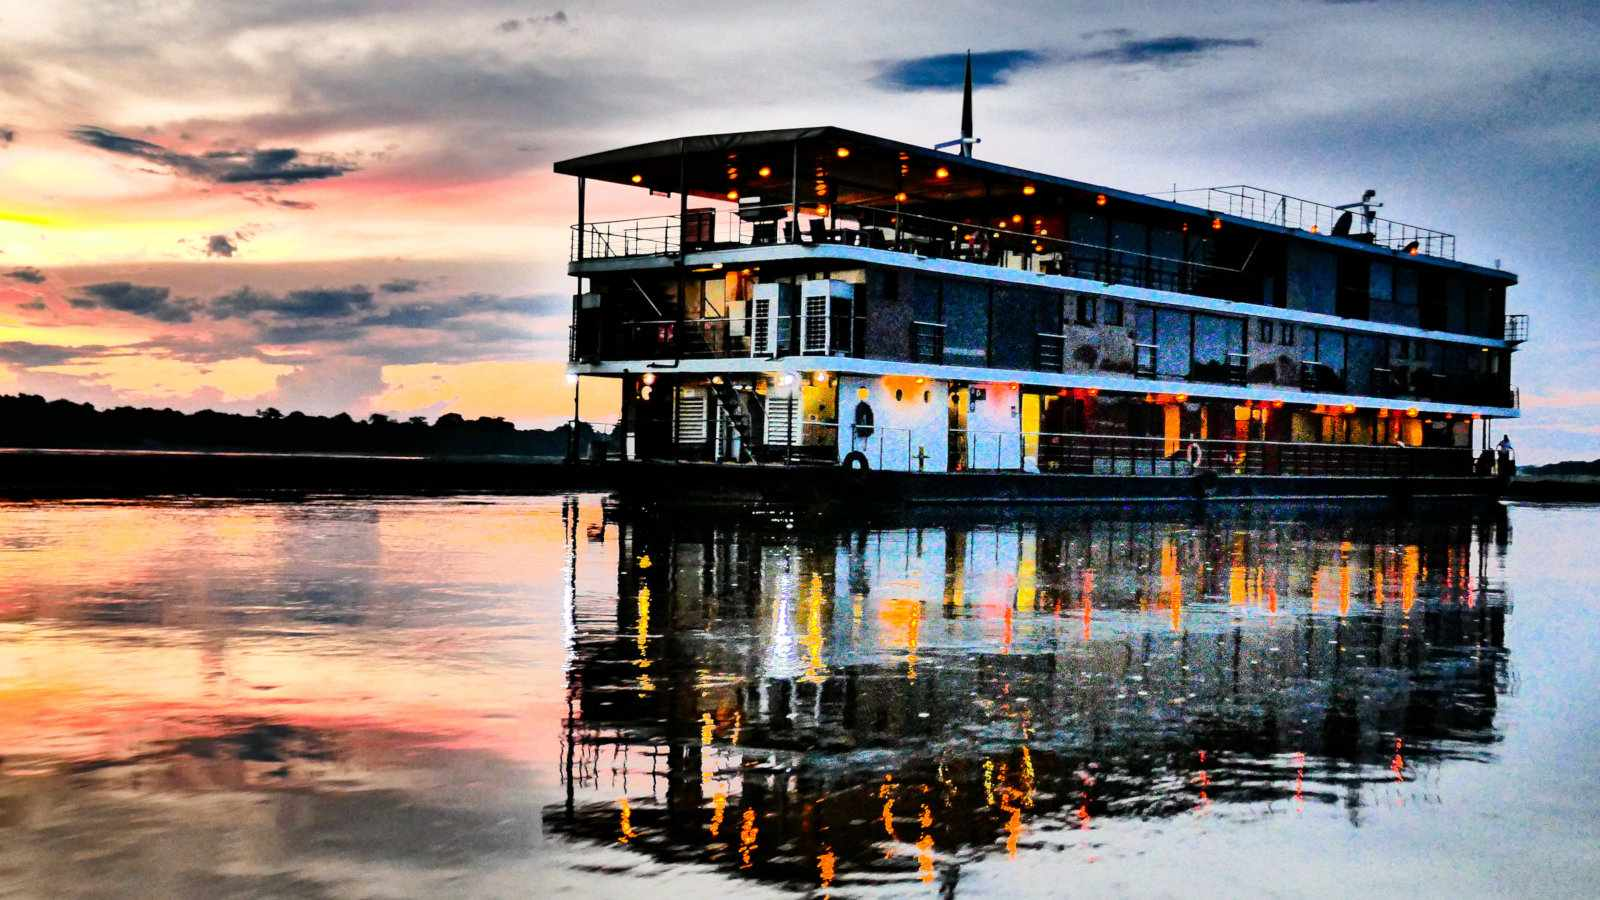 The Anakonda riverboat with one of many beautiful Amazon sunsets